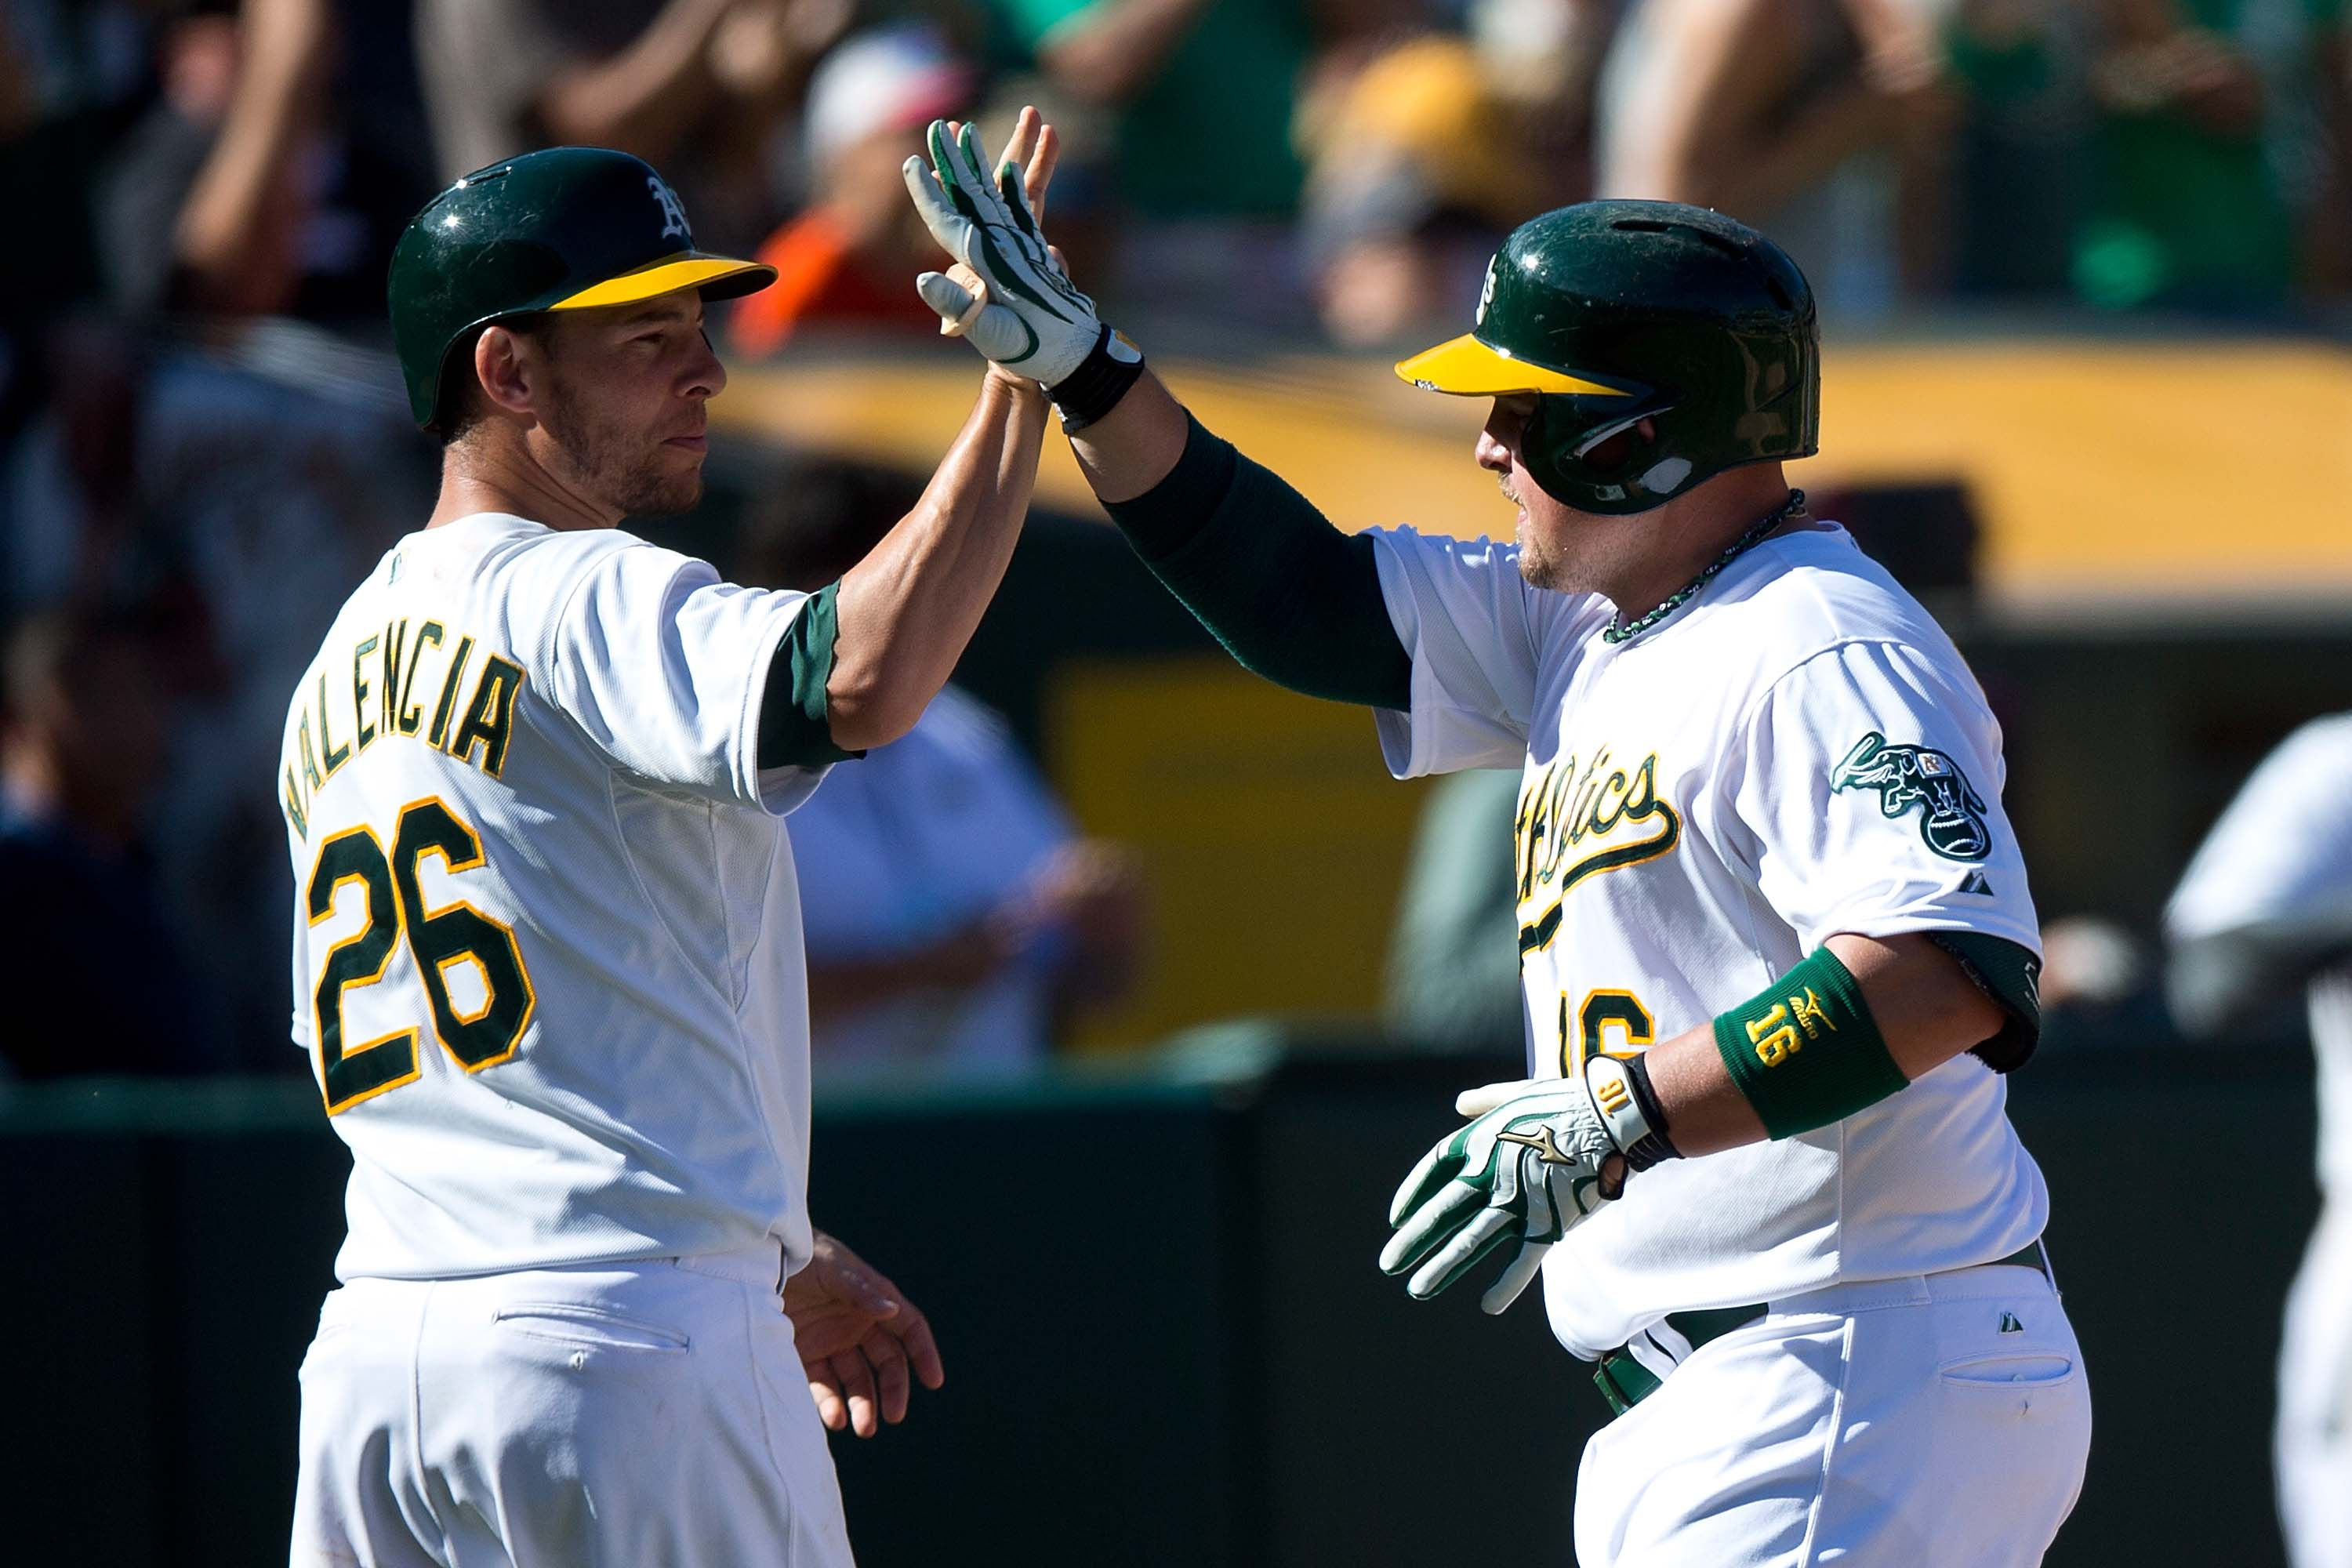 Billy Butler and Danny Valencia share a high-five and not fists during a recent game. (Getty Images/Jason O. Watson)